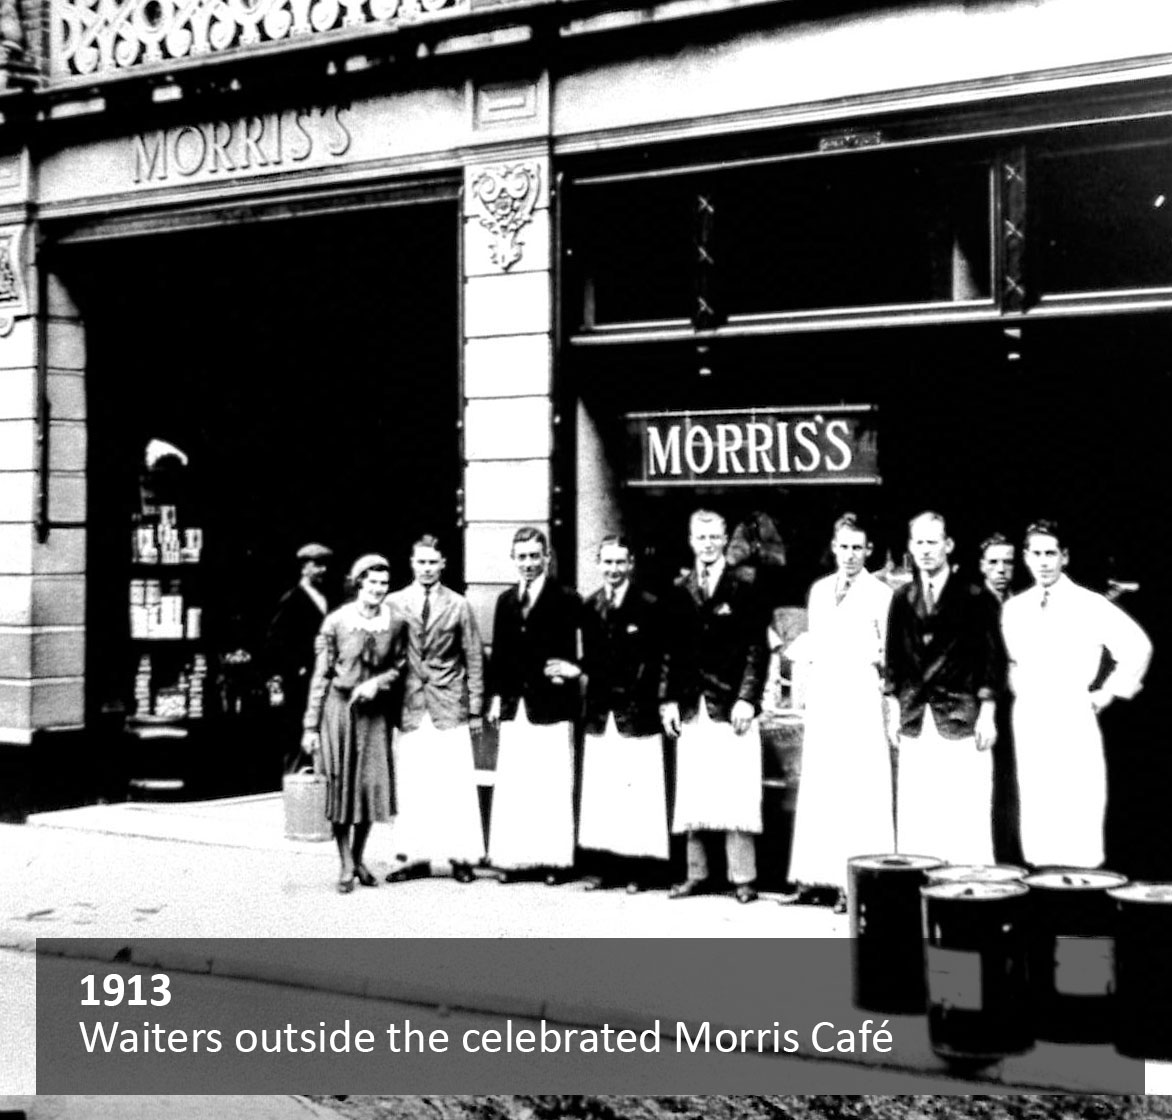 Waiters outside the celebrated Morris café